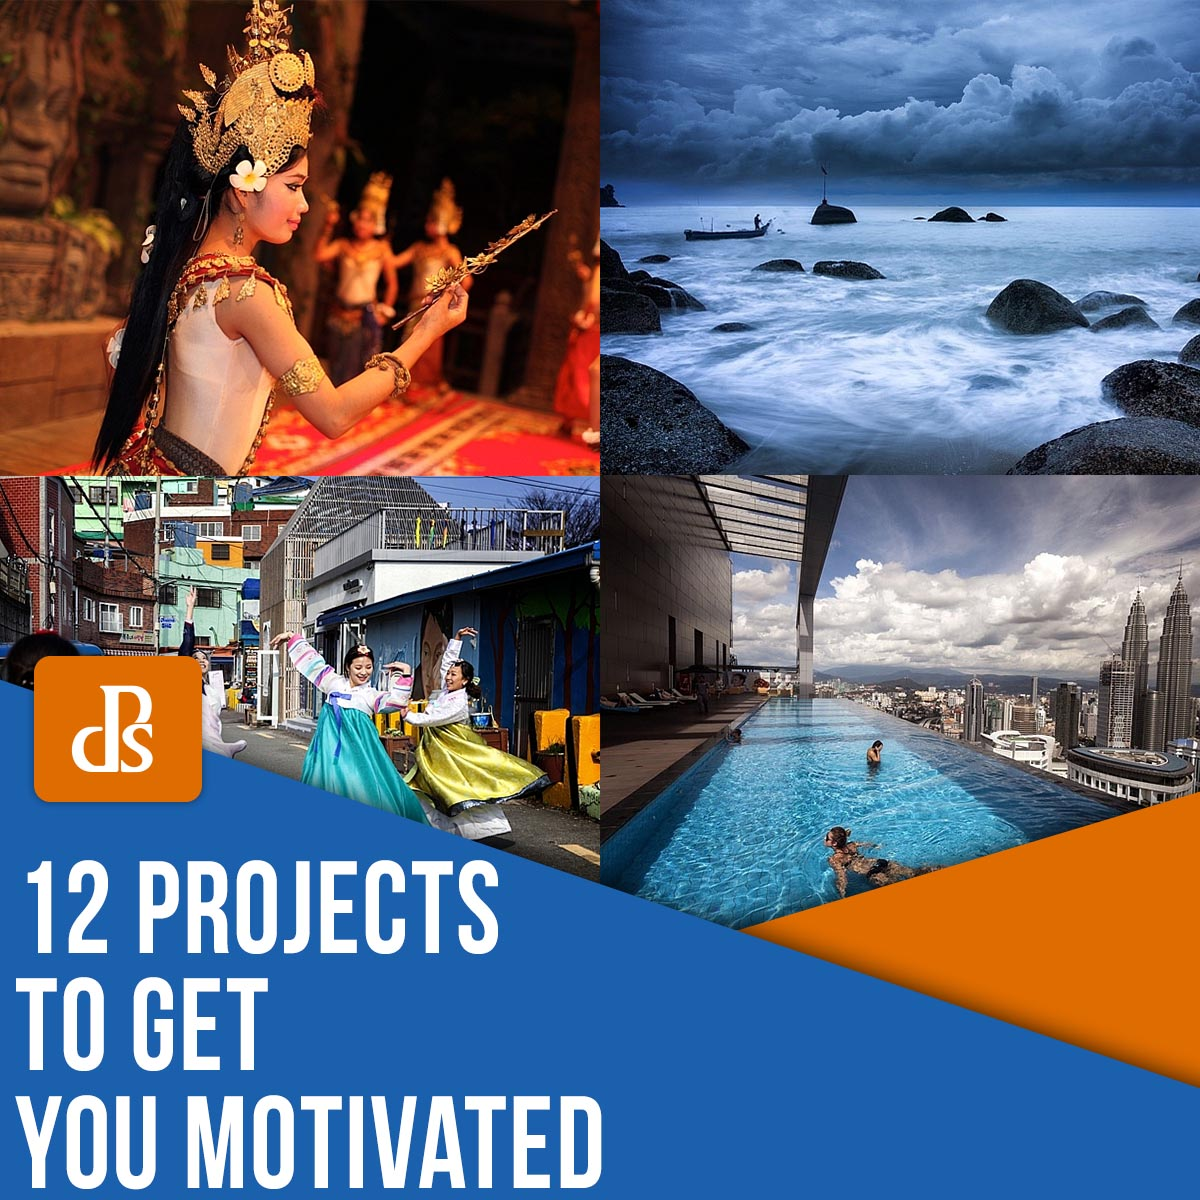 12 creative project ideas to get you motivated